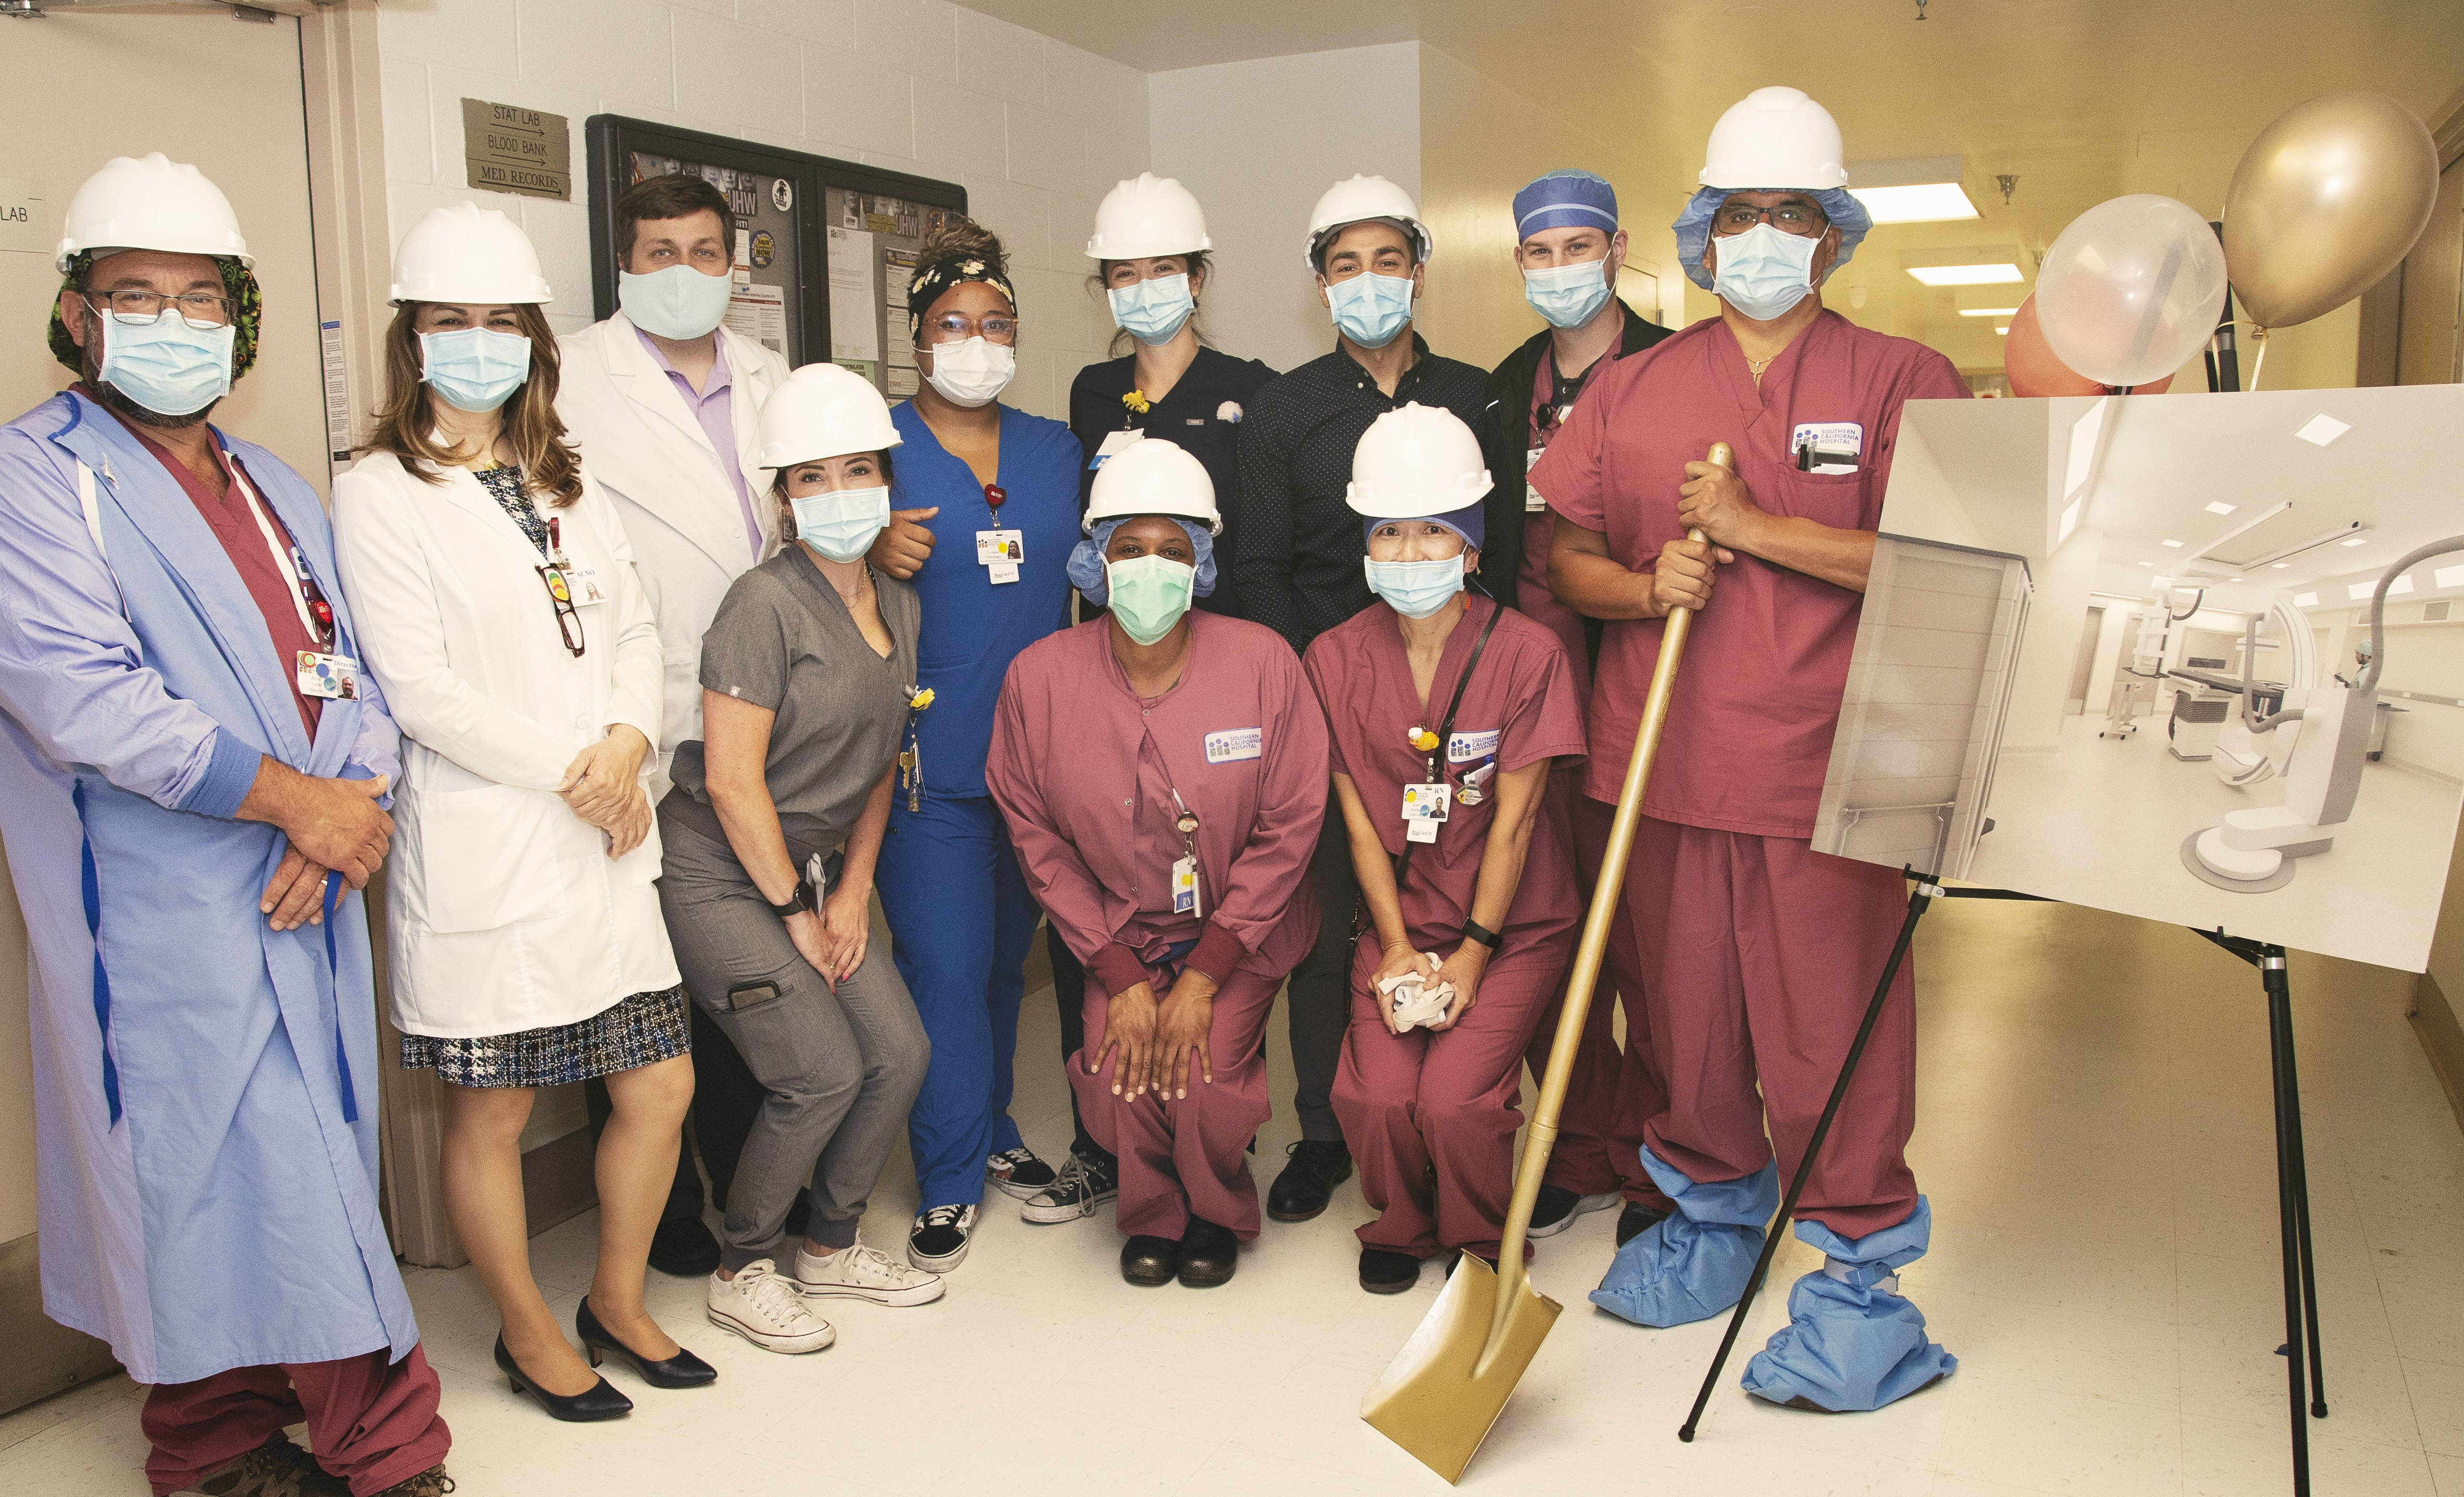 Heart Institute Breaks Ground on State-of-the-Art Cardiac Catheterization Lab